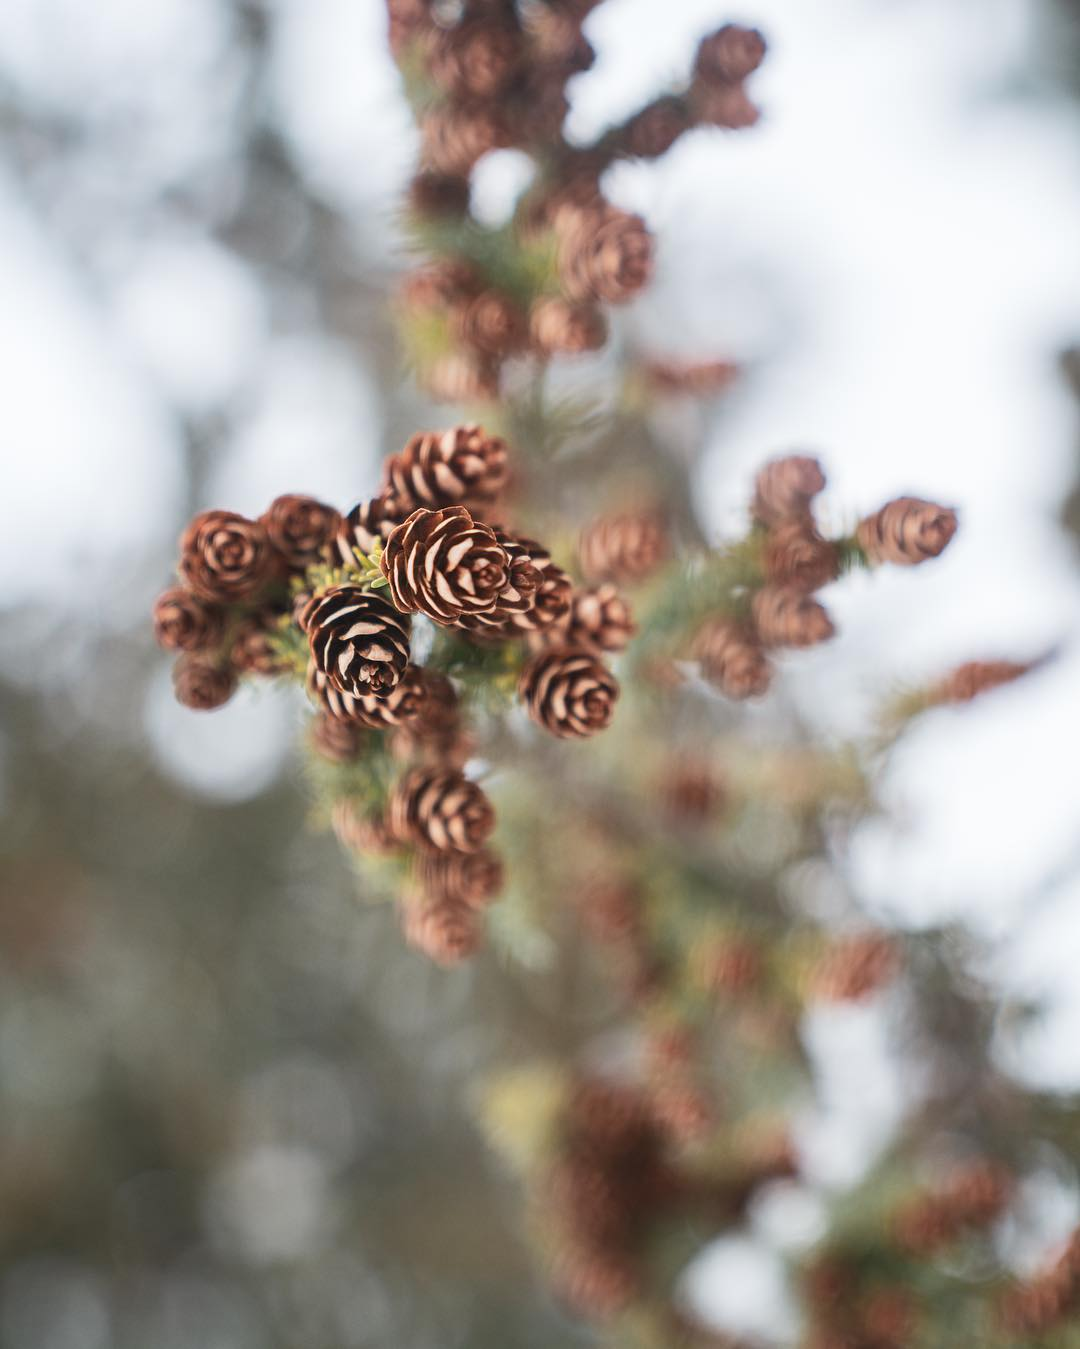 A prig of spruce cones framed against a blurred white and green background